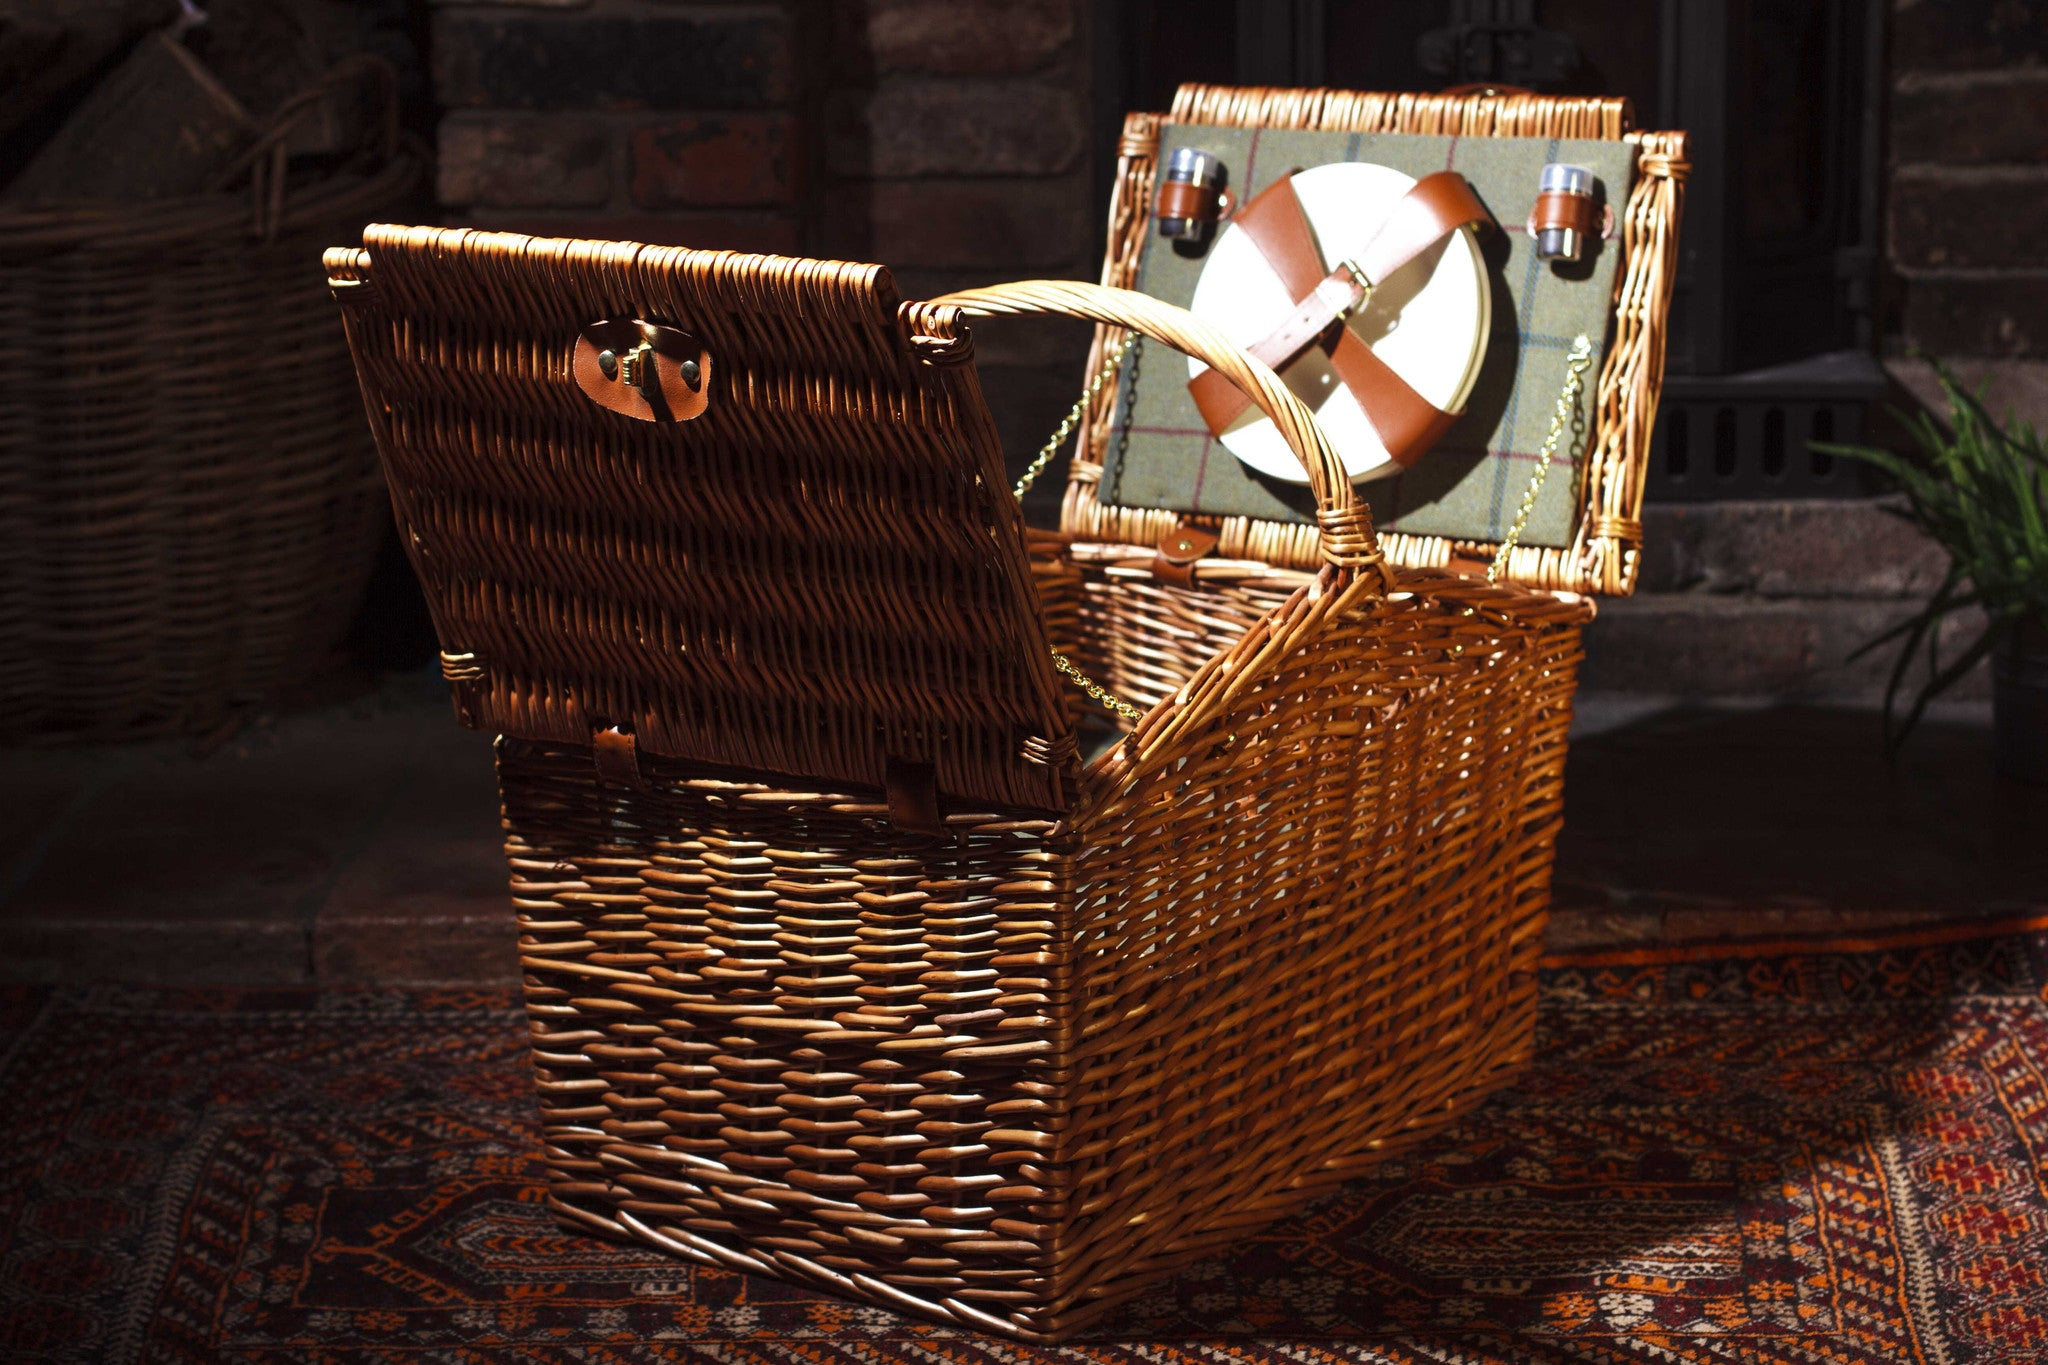 Green Tweed deluxe barn hamper | real leather | picnics | four person | chiller compartment | made in chelsea | wicker | willow | basket